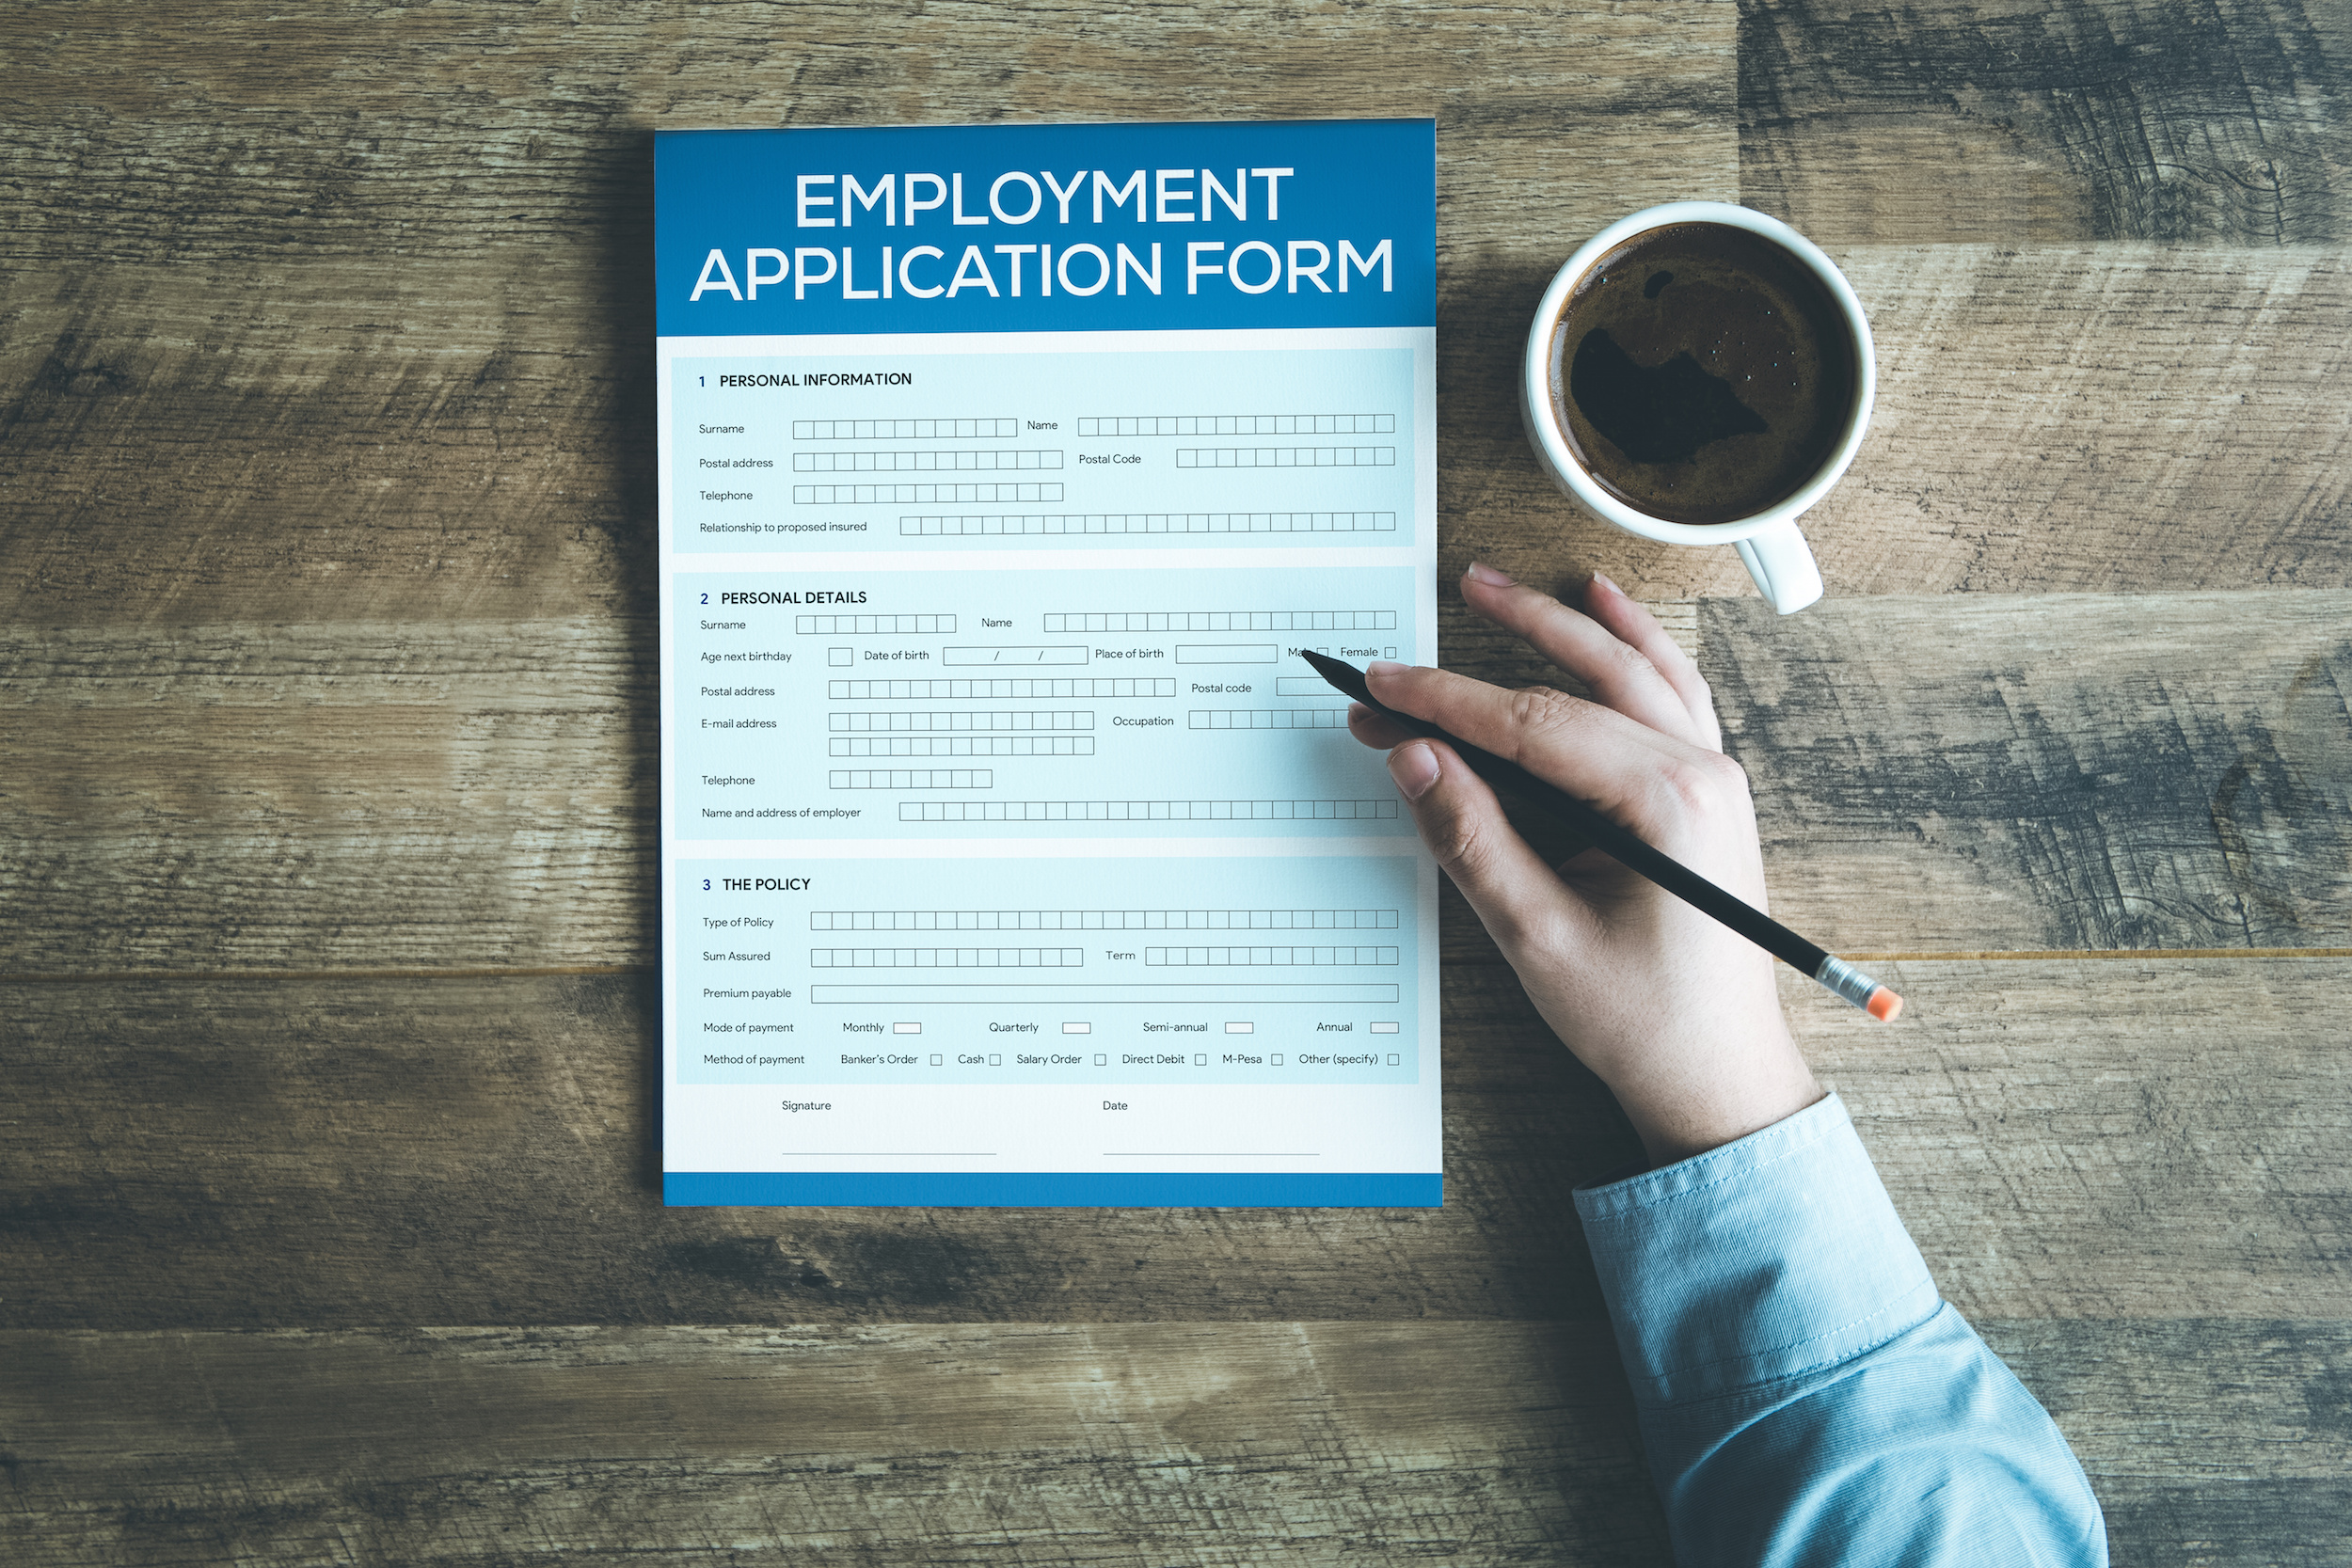 EMPLOYMENT APPLICATION FORM CONCEPT